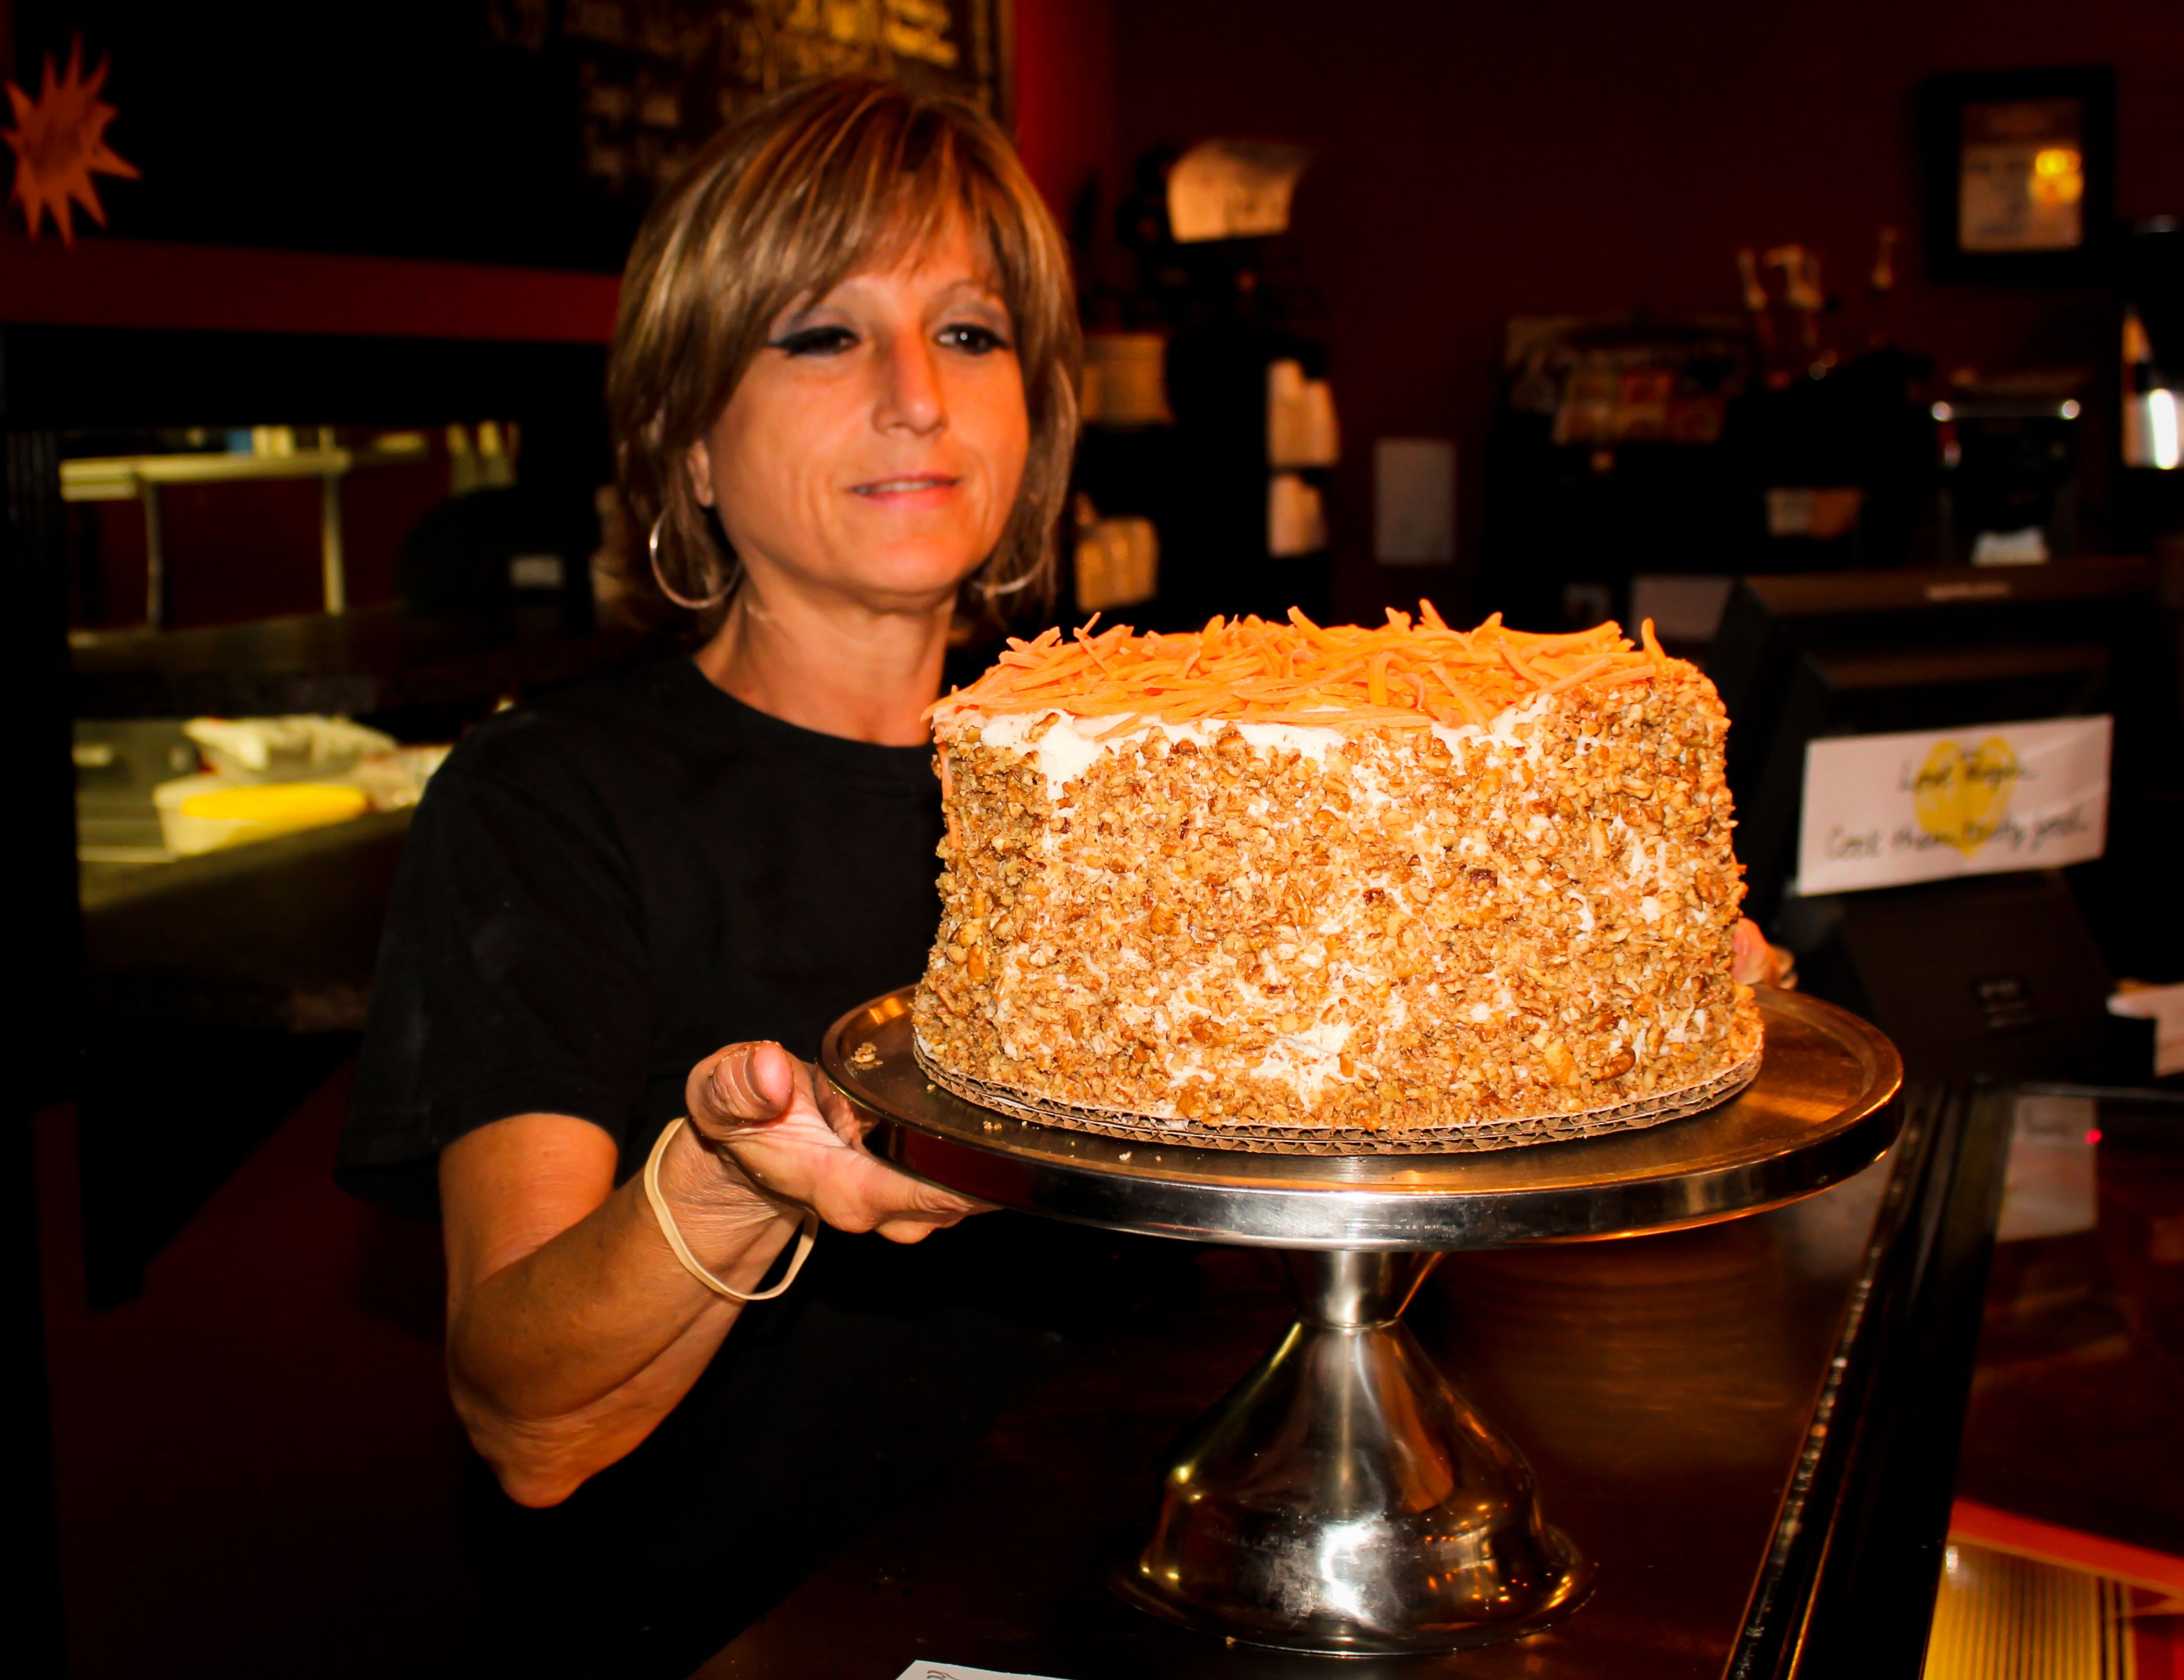 Cafe bonins carrot cake with images food carrot cake